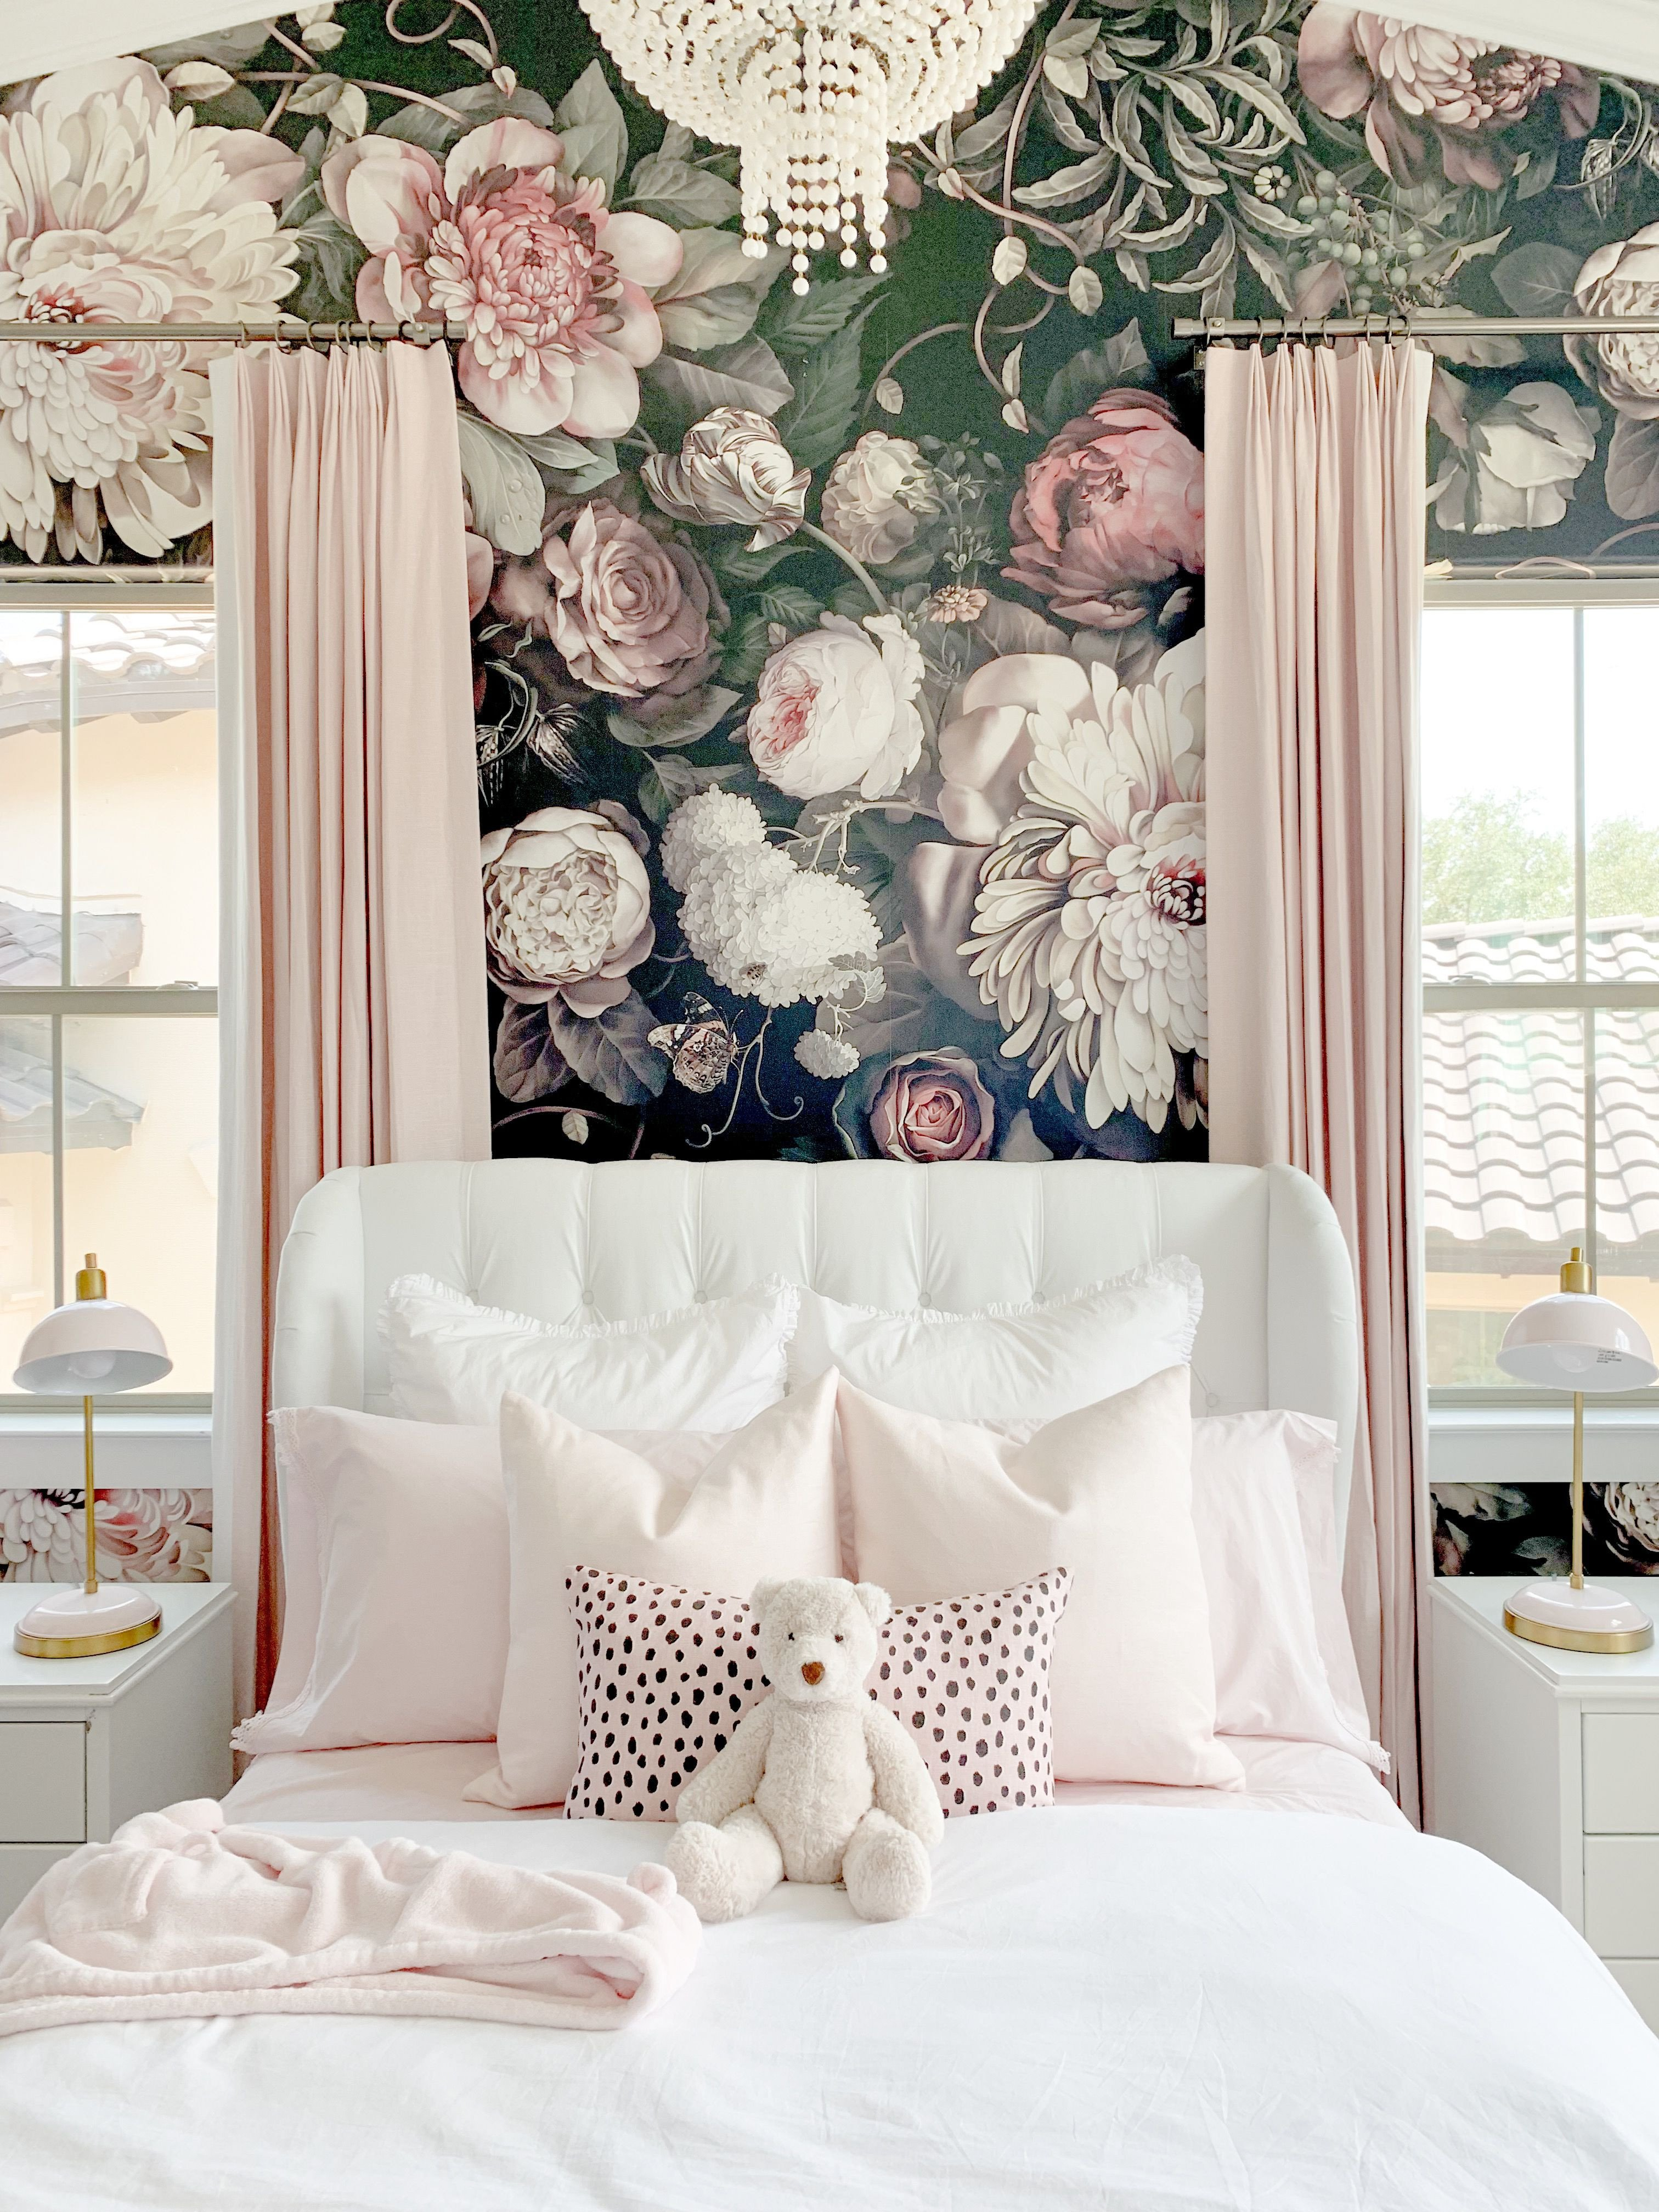 Wallpapers for Girls Bedroom Best Of Blush Pink Bedroom with Floral Wallpaper A White Tufted